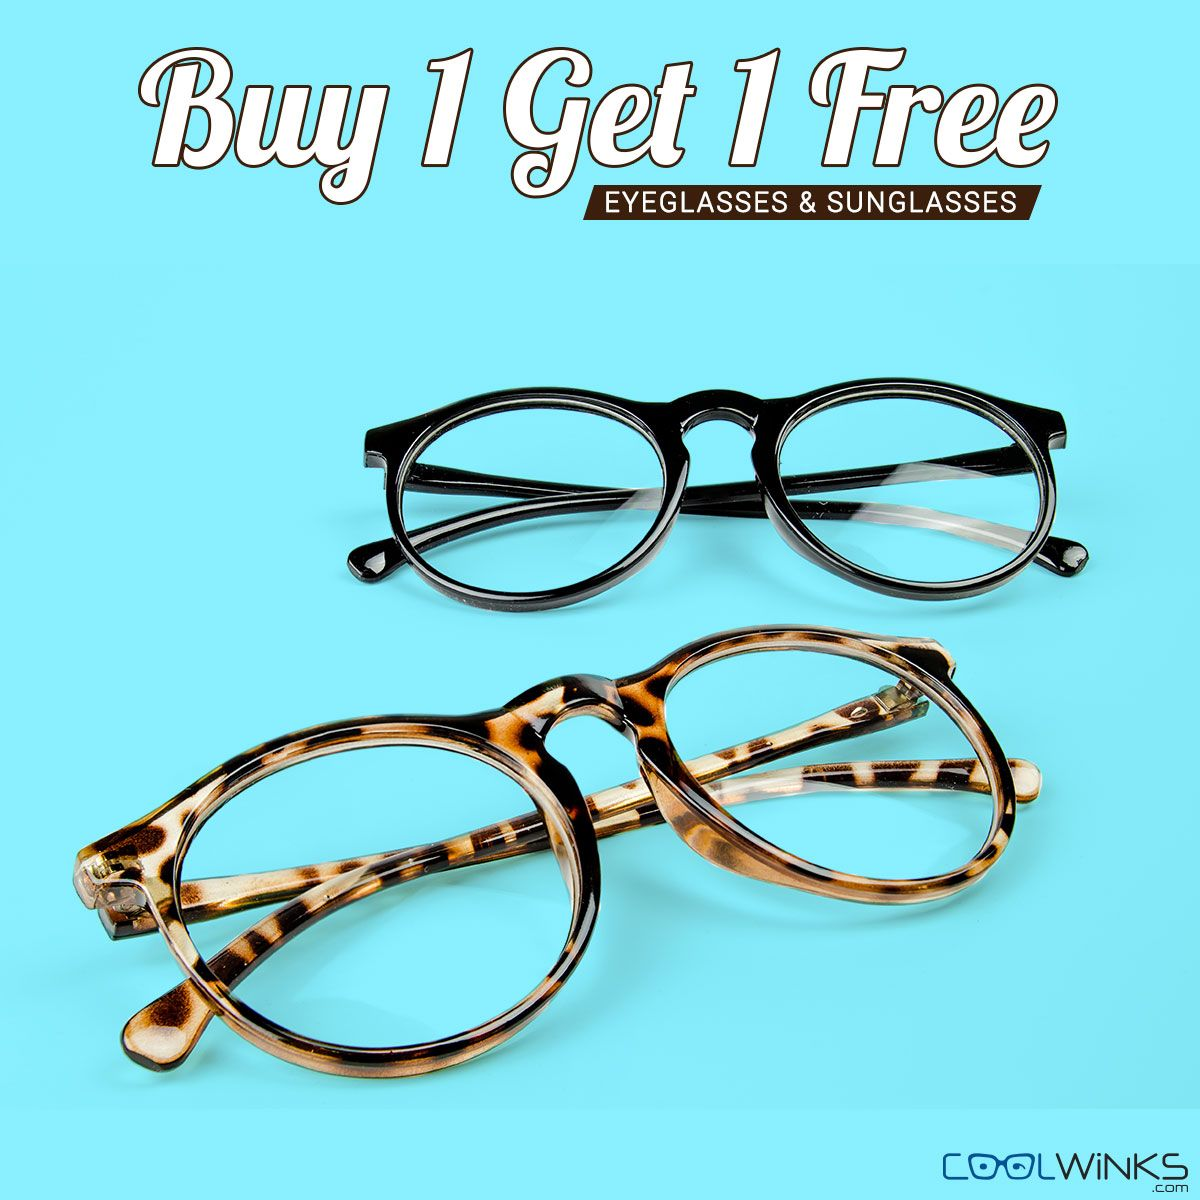 658c41d774 Shop any pair of Eyeglasses  Coolwinks   get another for free. Grab them  before they are gone. Buy Now.